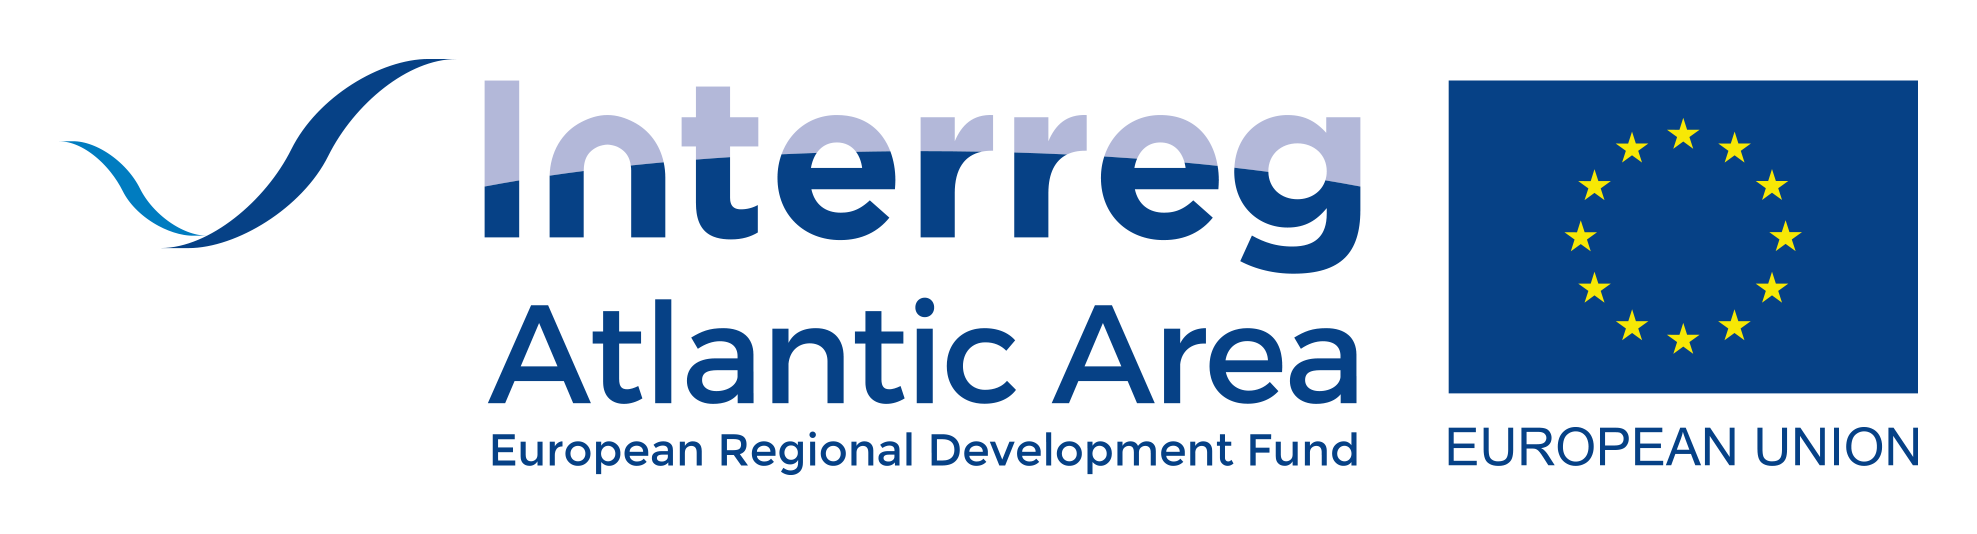 Logo_Interreg-Atlantic-Area_COLOR-FULL